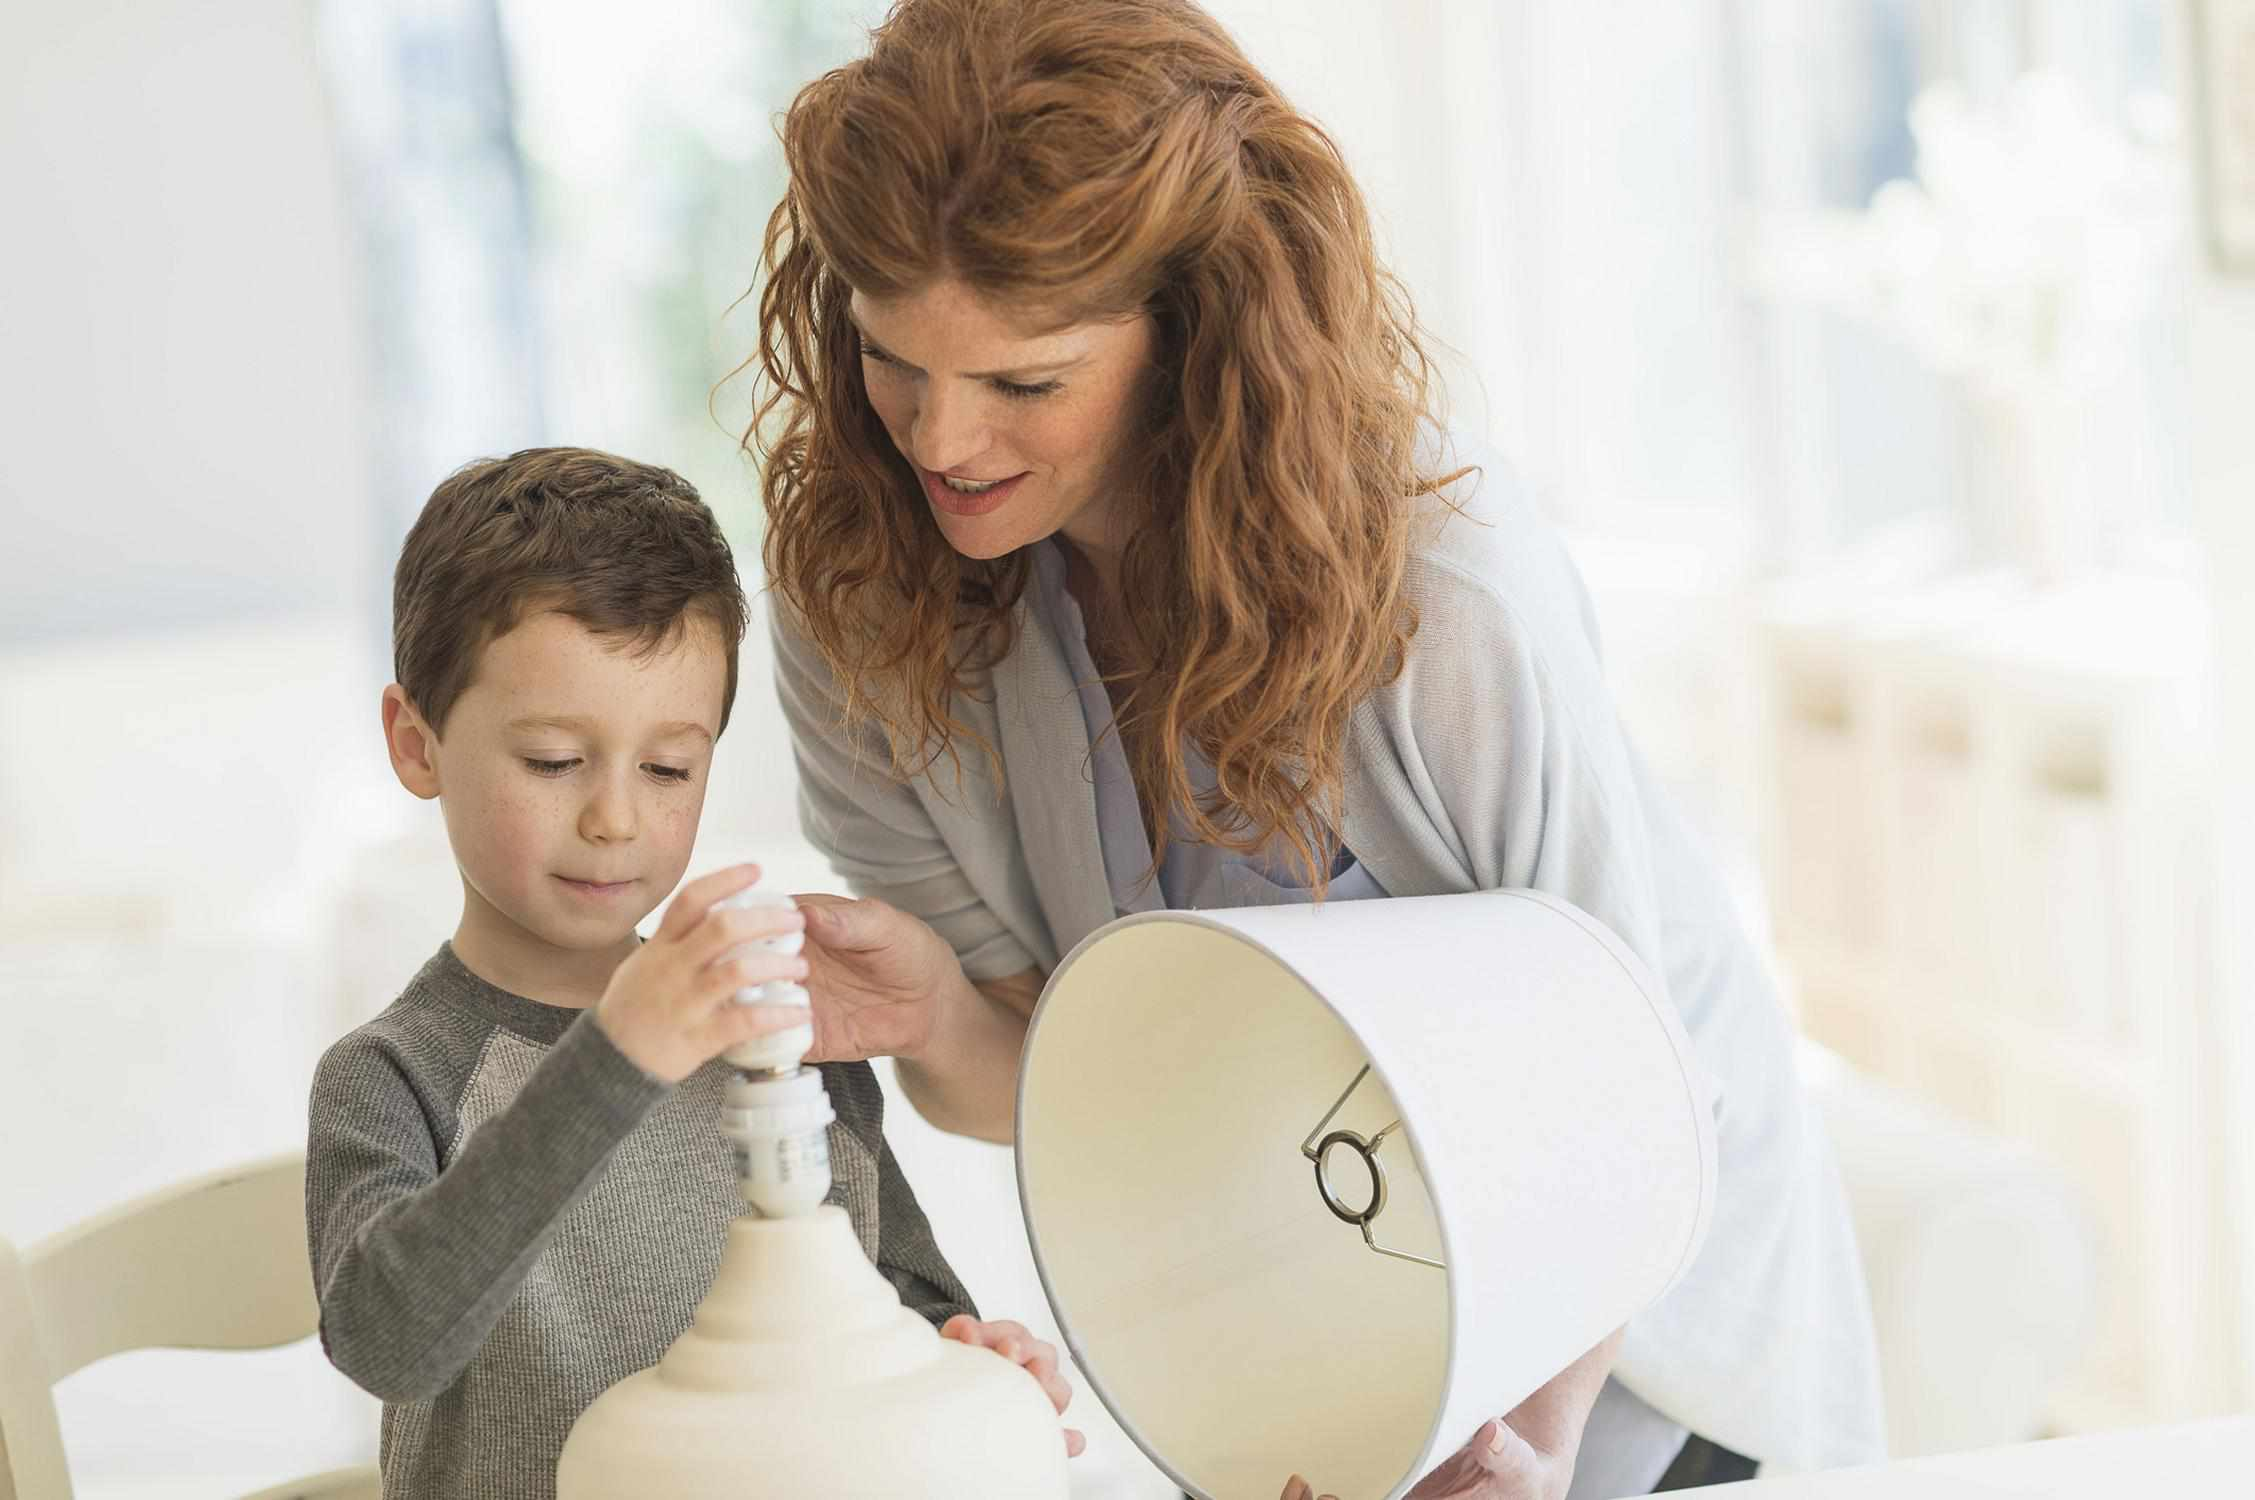 mom showing her son how to change a light bulb